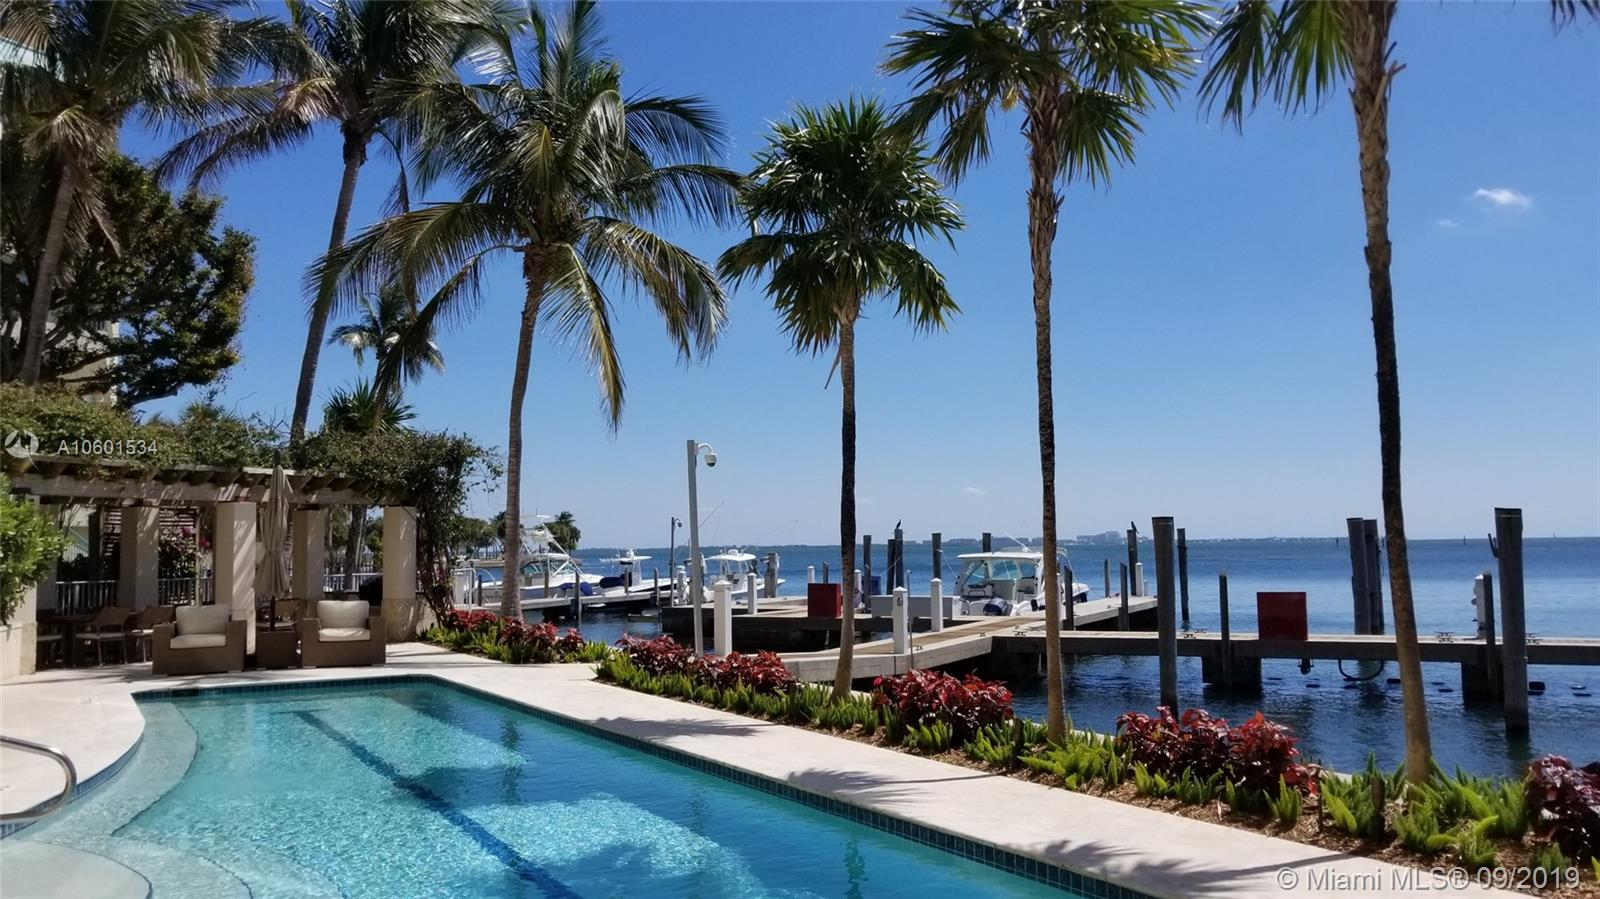 Waterfront luxury residence in the heart of Coconut Grove with direct ocean access and 2 boat slips included; currently asking $863/sf. This exclusive residence offers expansive water views right on Biscayne Bay, beautiful wood floors throughout, high ceilings, impact windows, open floor plan comprising of ample living, dining, Poggenpohl kitchen, breakfast nook, 4 bedrooms, 3 bathrooms and 3 terraces; only ten residences with private elevator entry and foyer. This boutique building offers tranquility and incomparable life style, lobby renovated, new roof and new A/C about 1 year old. Amenities include 60 ft heated lap pool, Jacuzzi, exercise room, BBQ area and deep-water Marina.